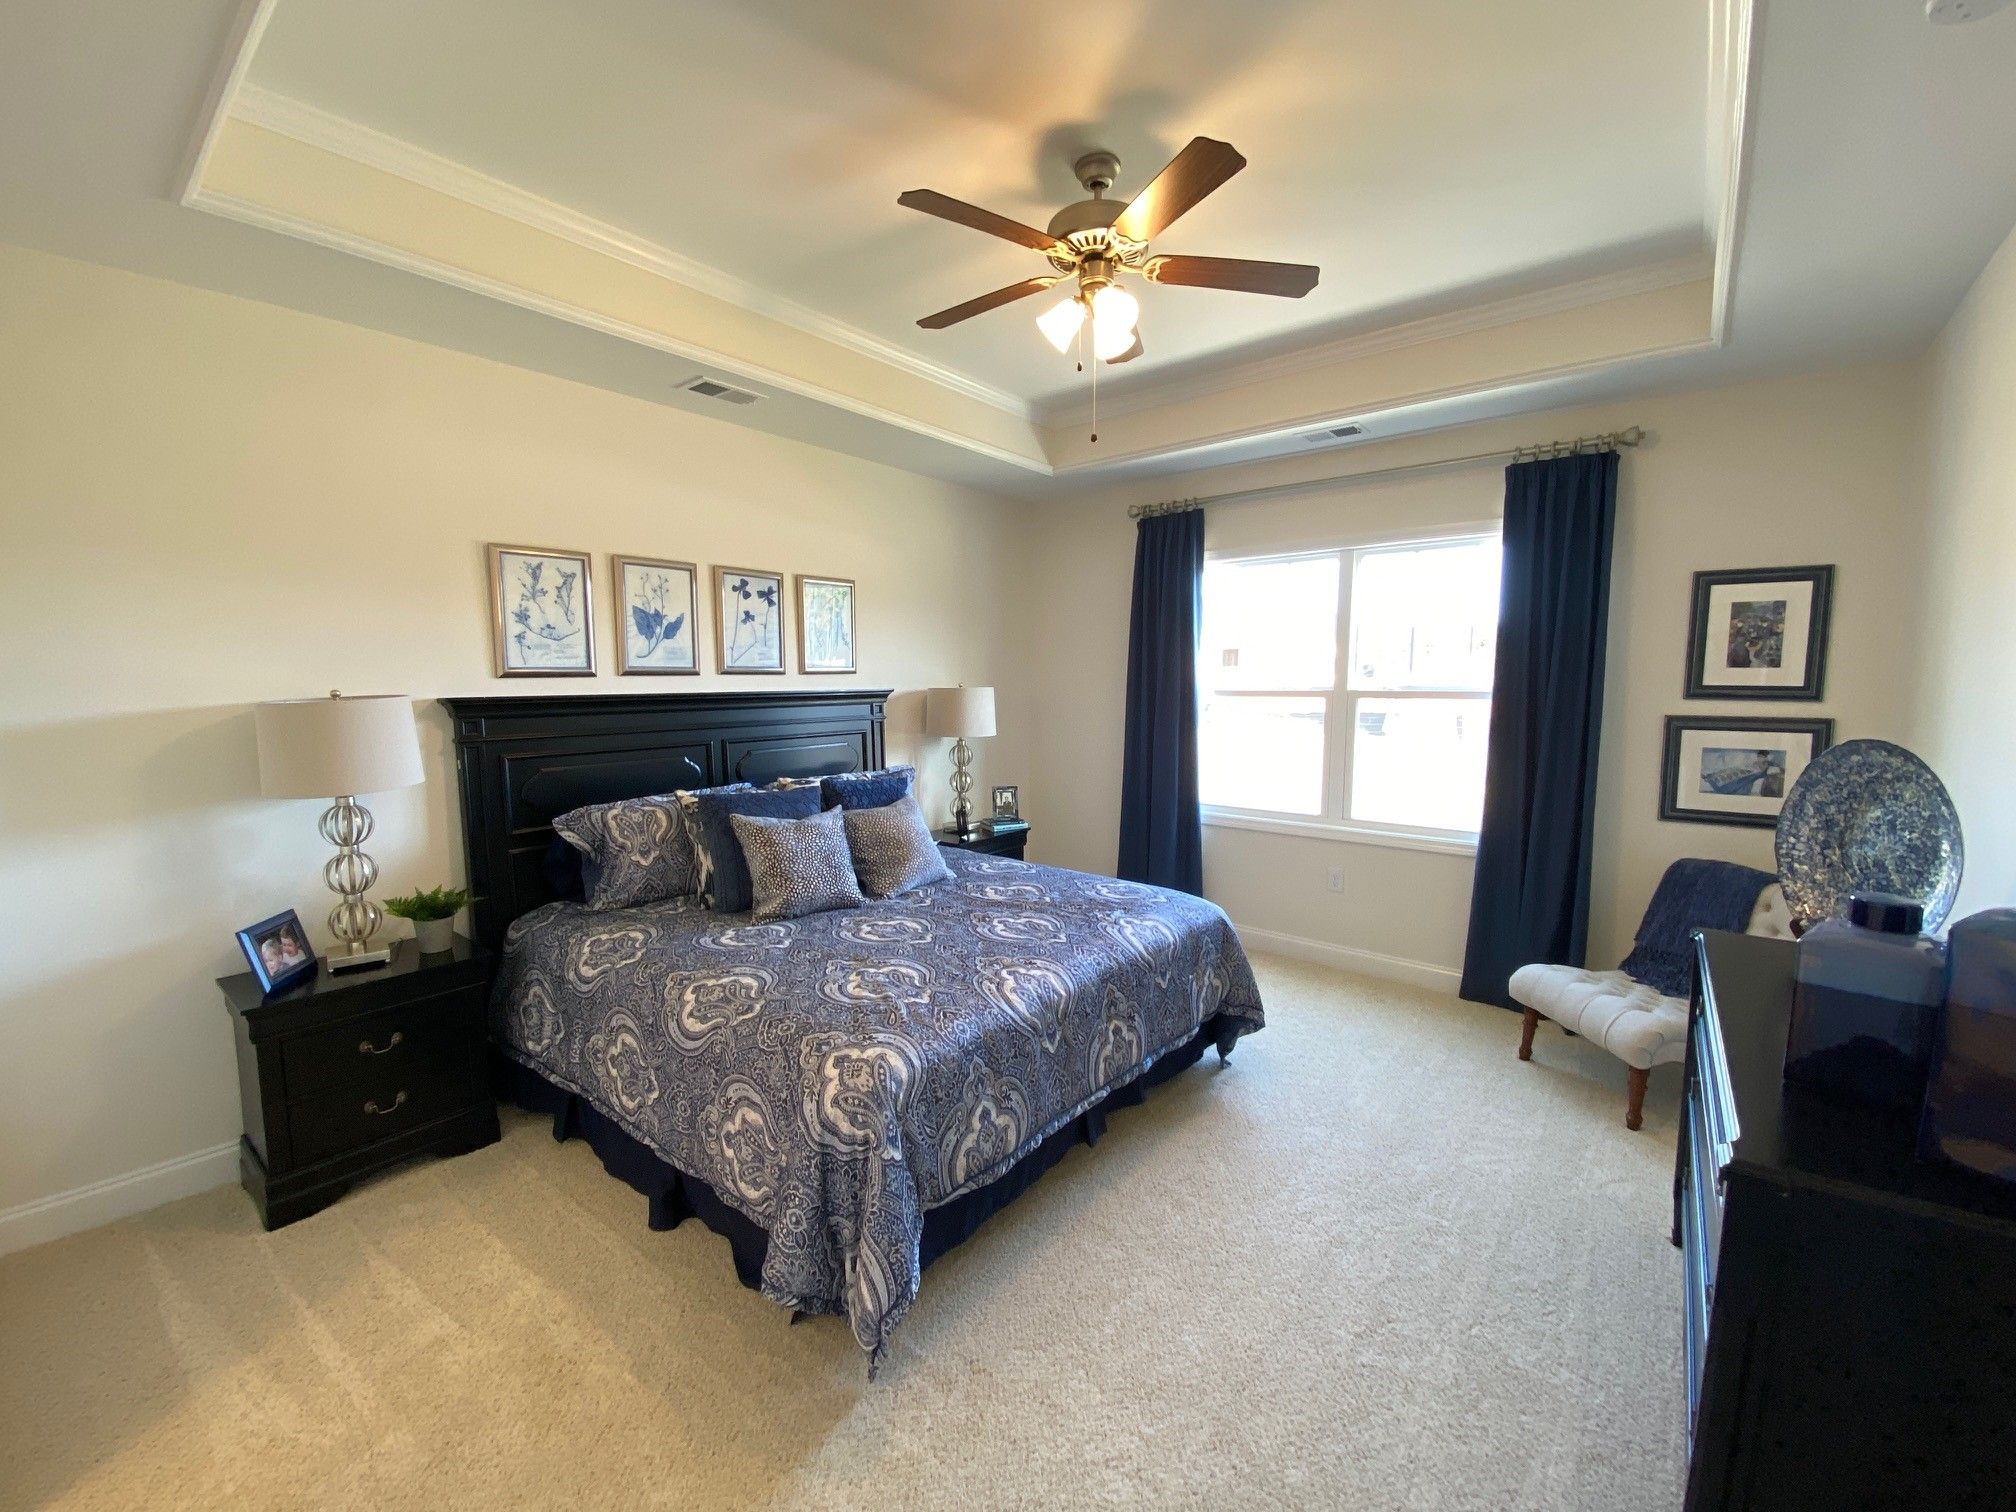 Bedroom featured in the Ashewood with Bonus Room and 3rd Bath By The Orchards Group in Atlanta, GA